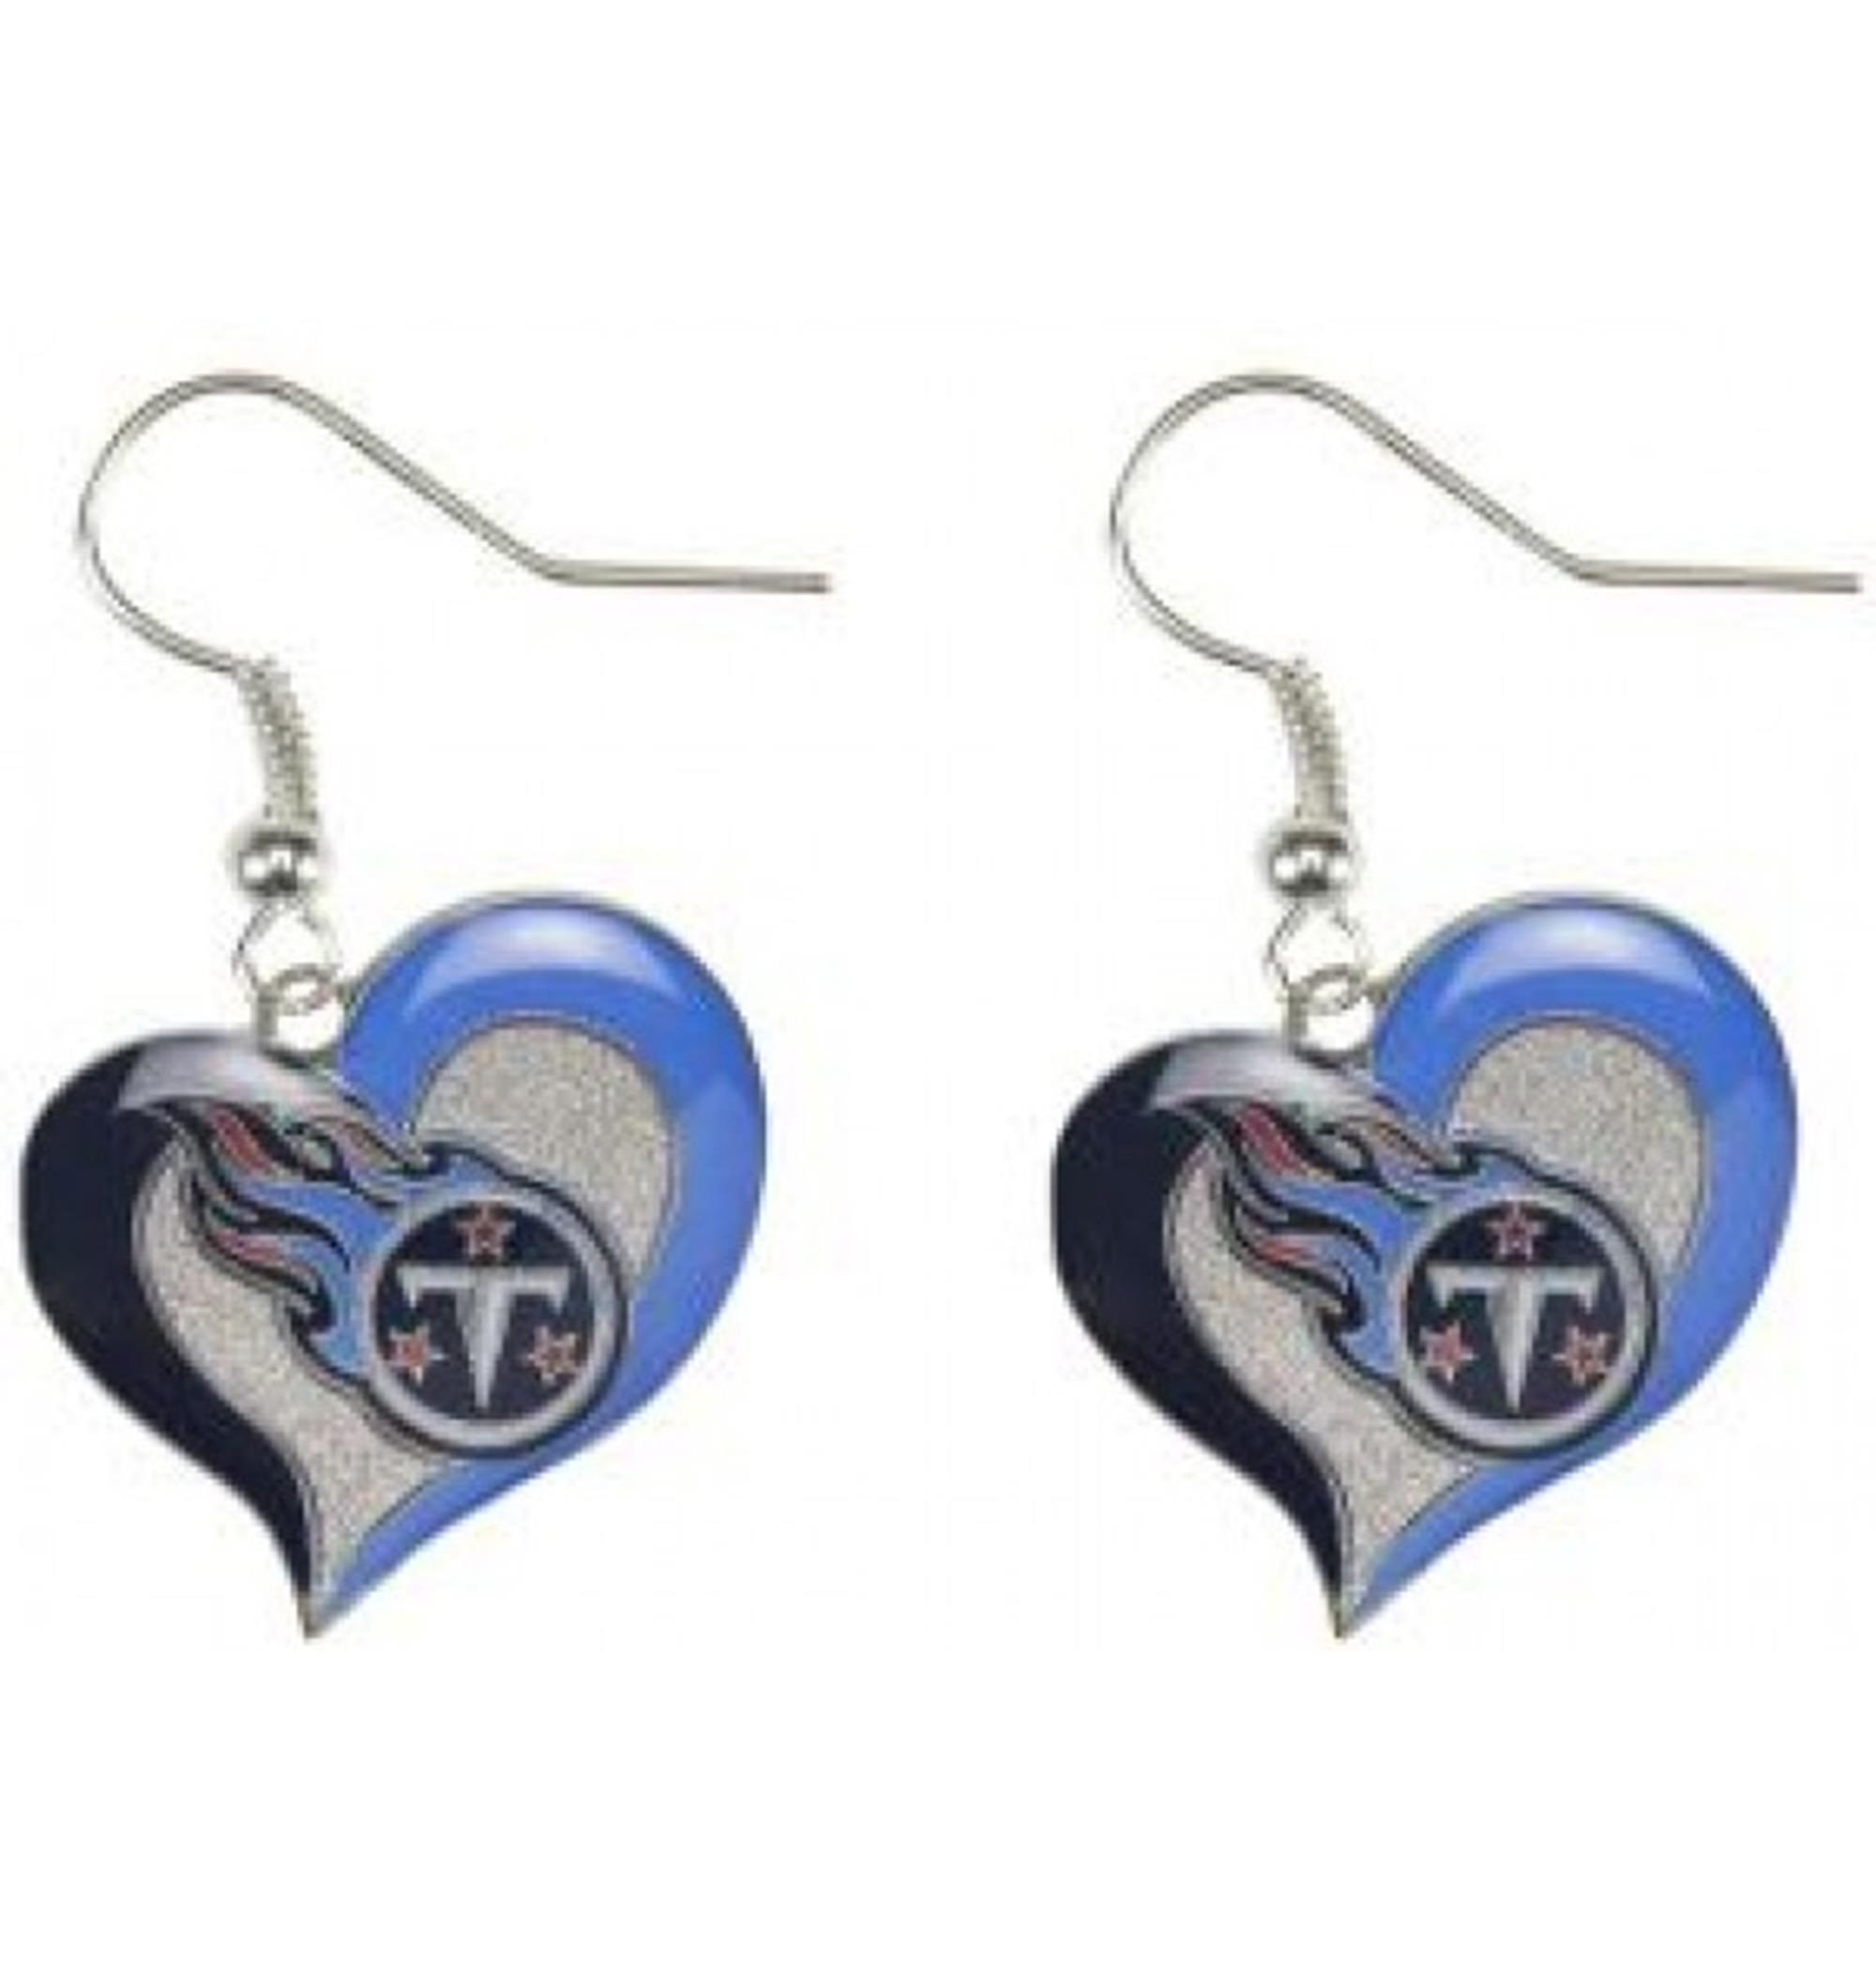 Licensed NFL Swirl Heart Earrings Dangle Charm Team Logo SELECT YOUR TEAM w/Gift Box from Superheroes